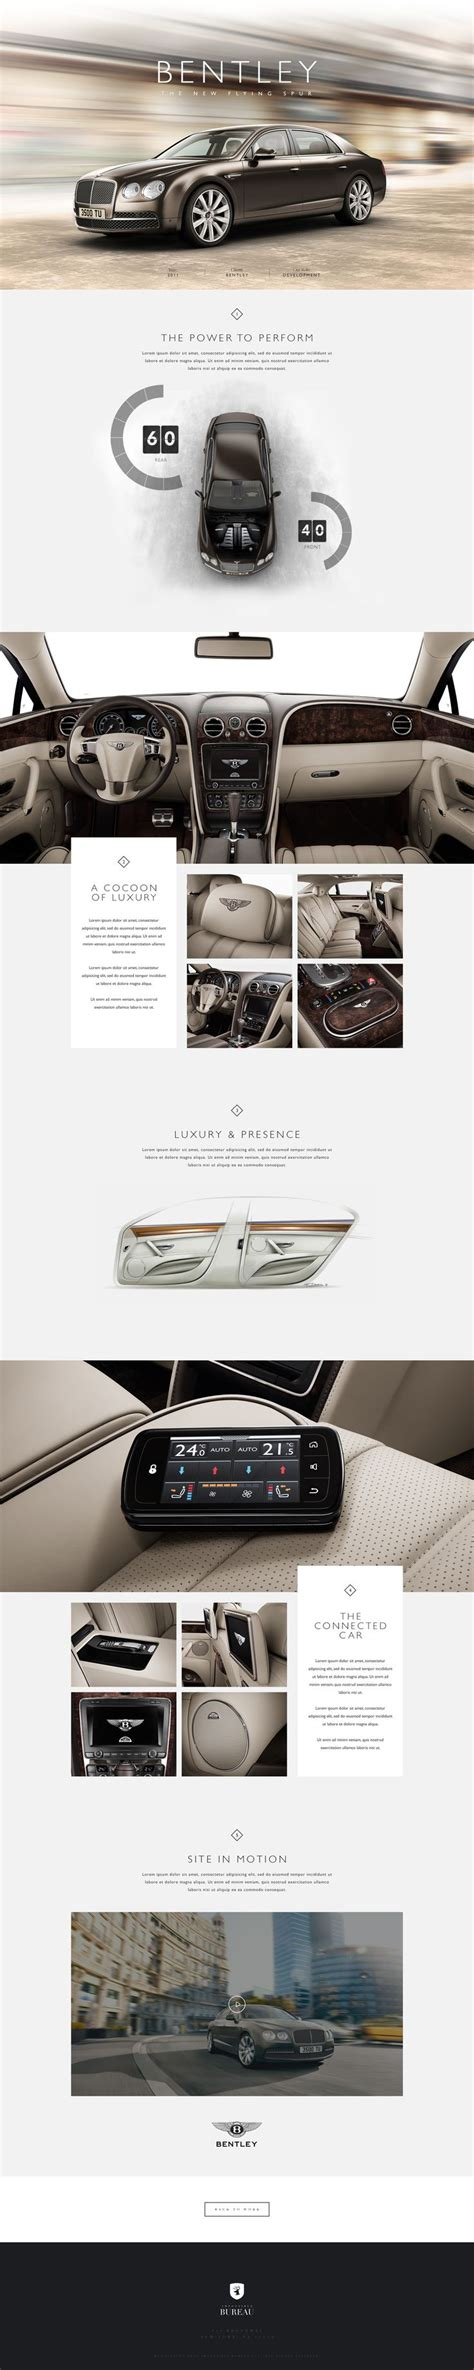 web bureau cool automotive web design on the bentley